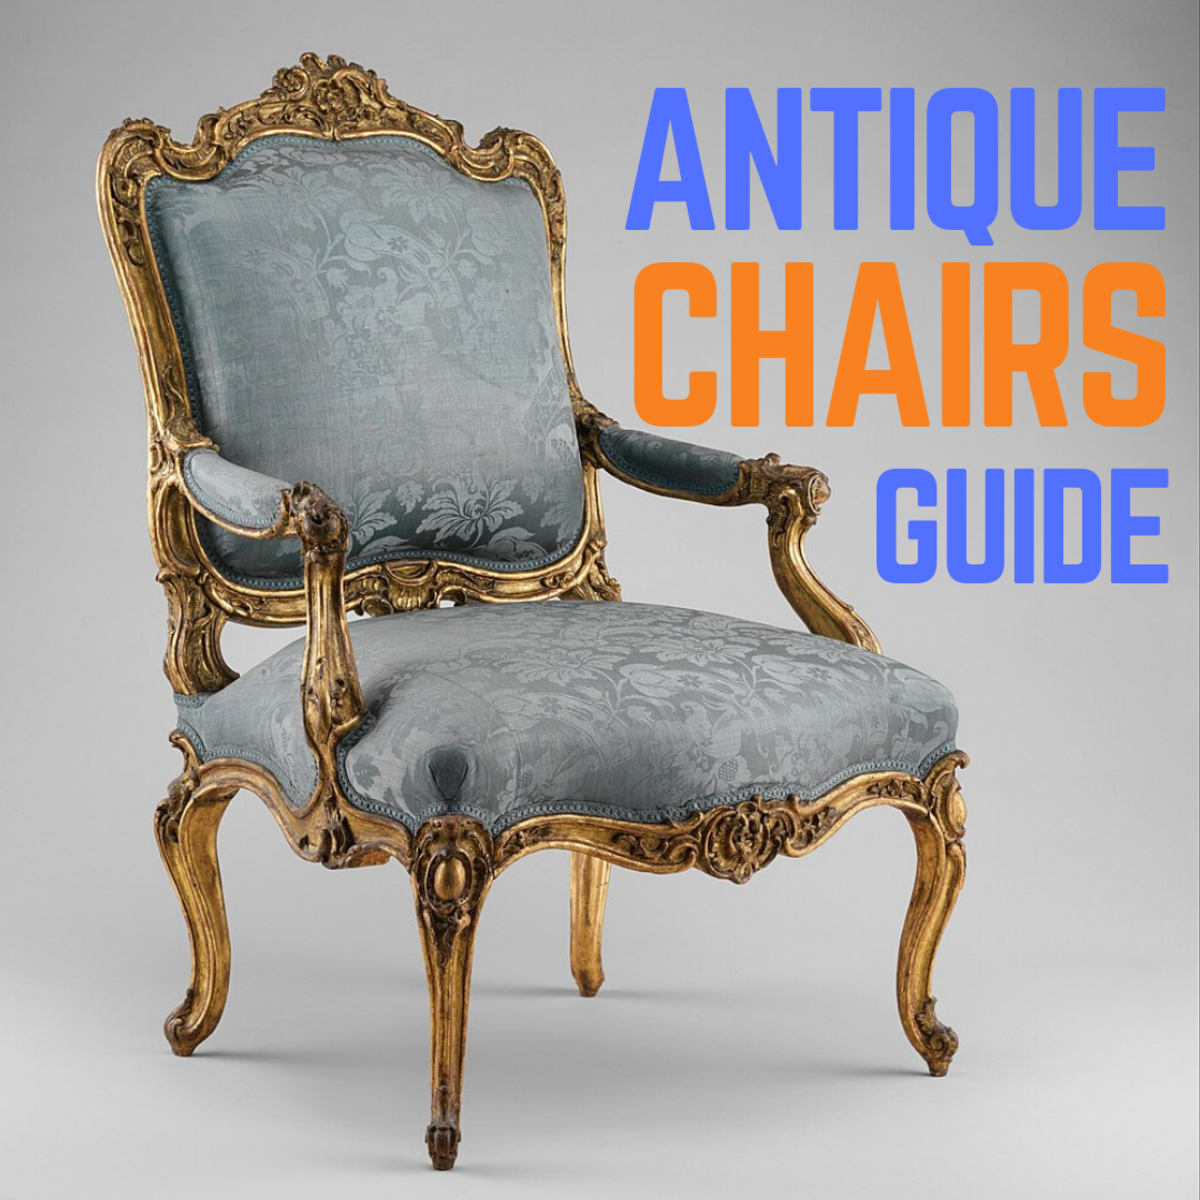 A Photo Guide to Antique Chairs